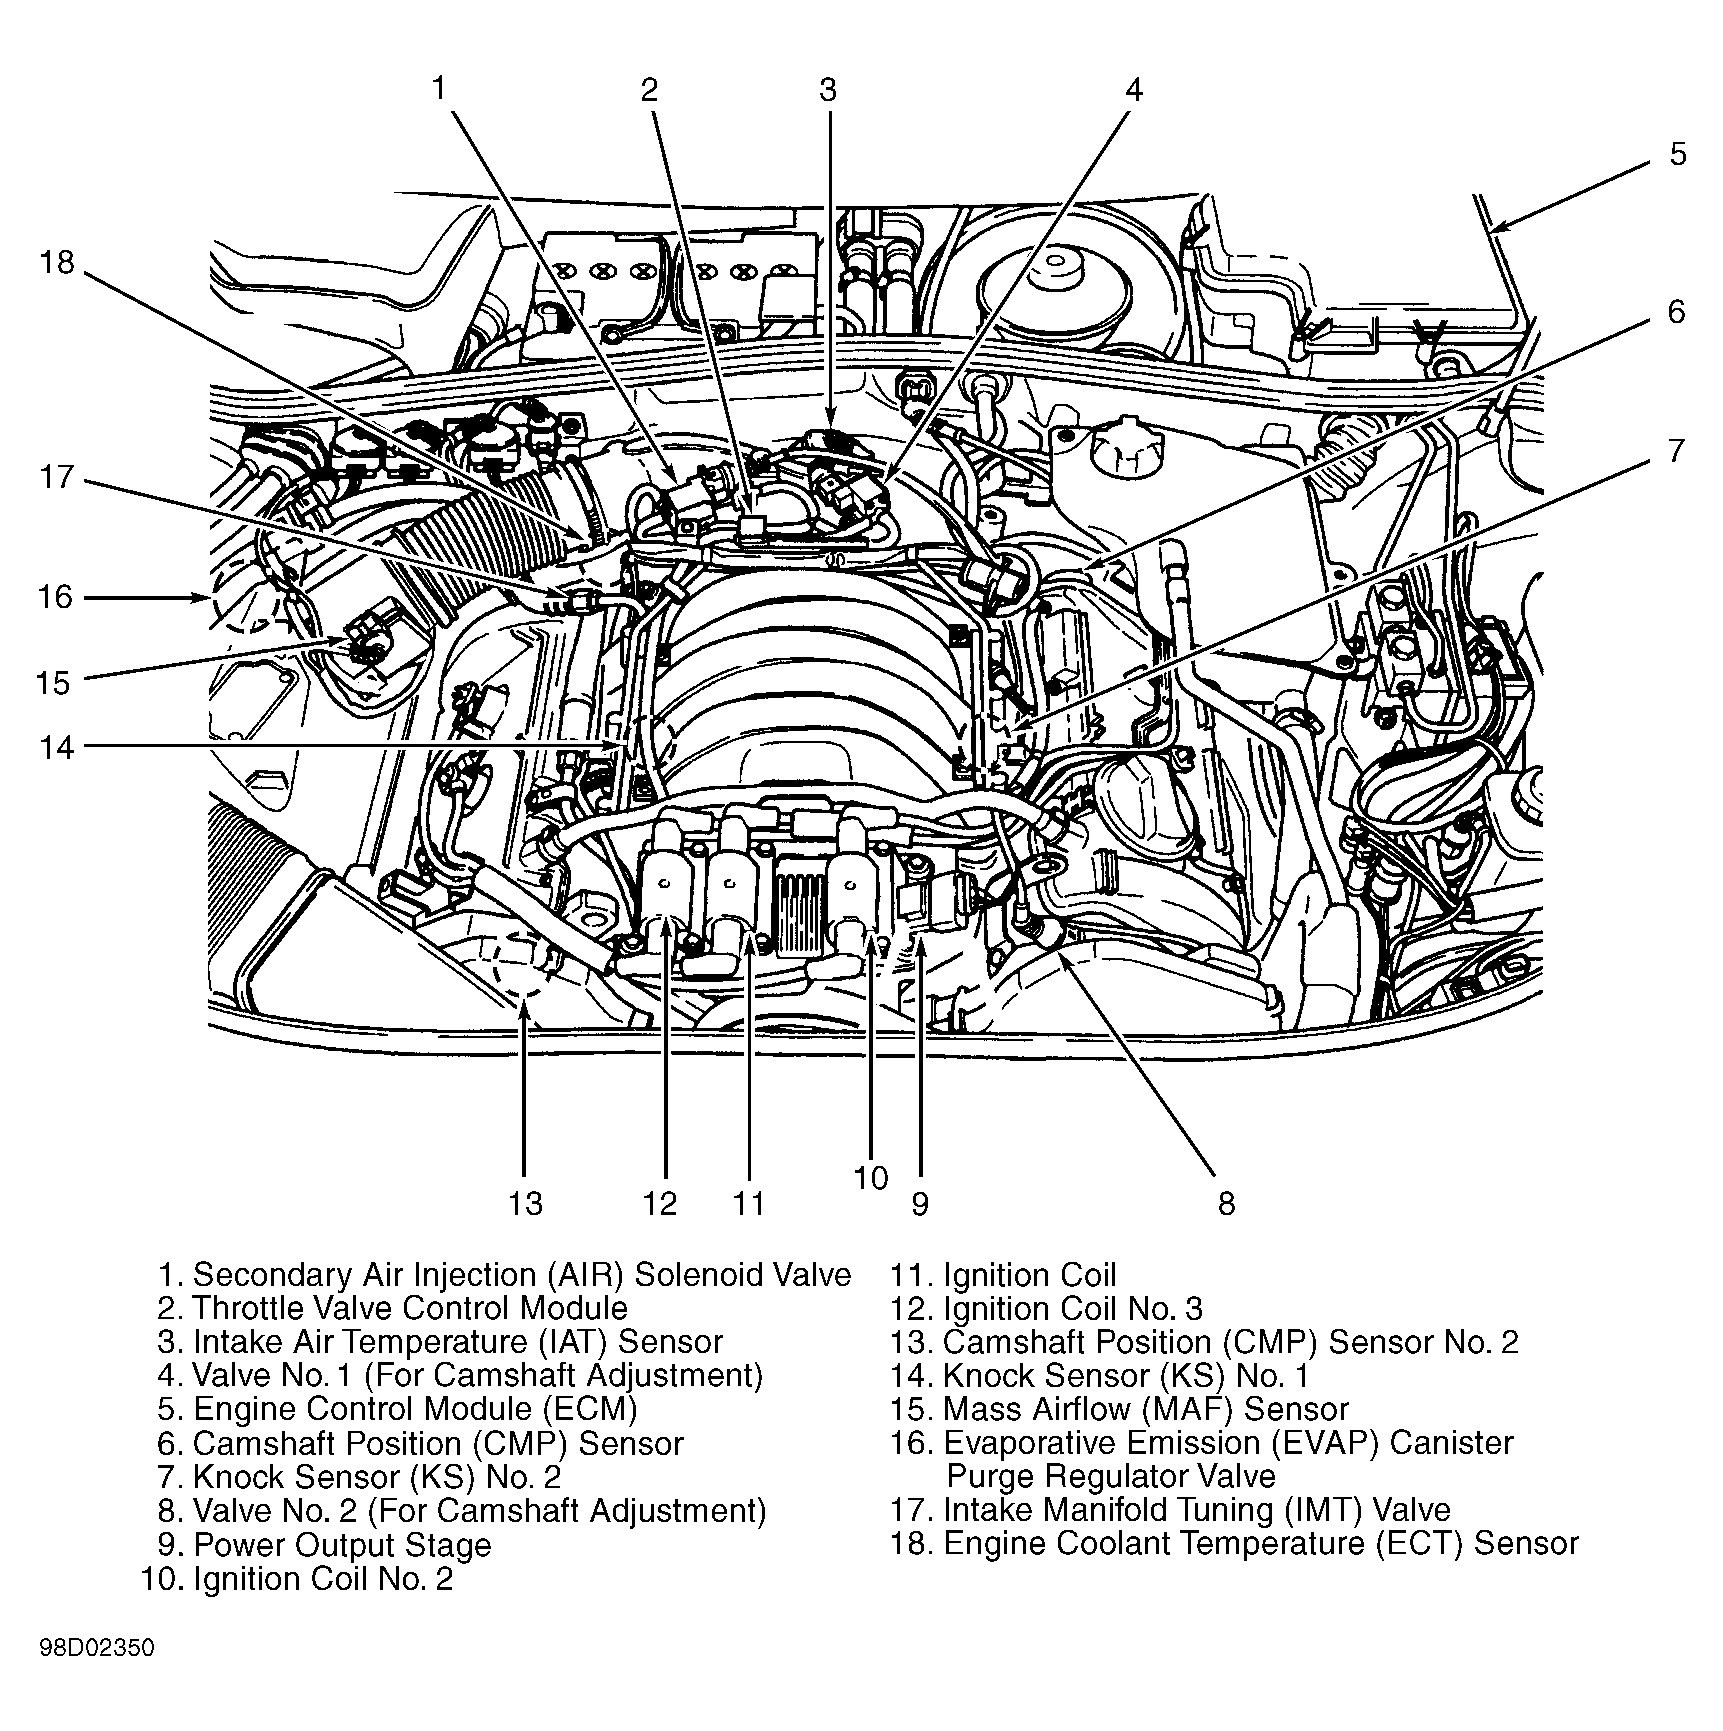 dodge neon 2 0 engine diagram - fusebox and wiring diagram circuit-care -  circuit-care.coroangelo.it  diagram database - coroangelo.it